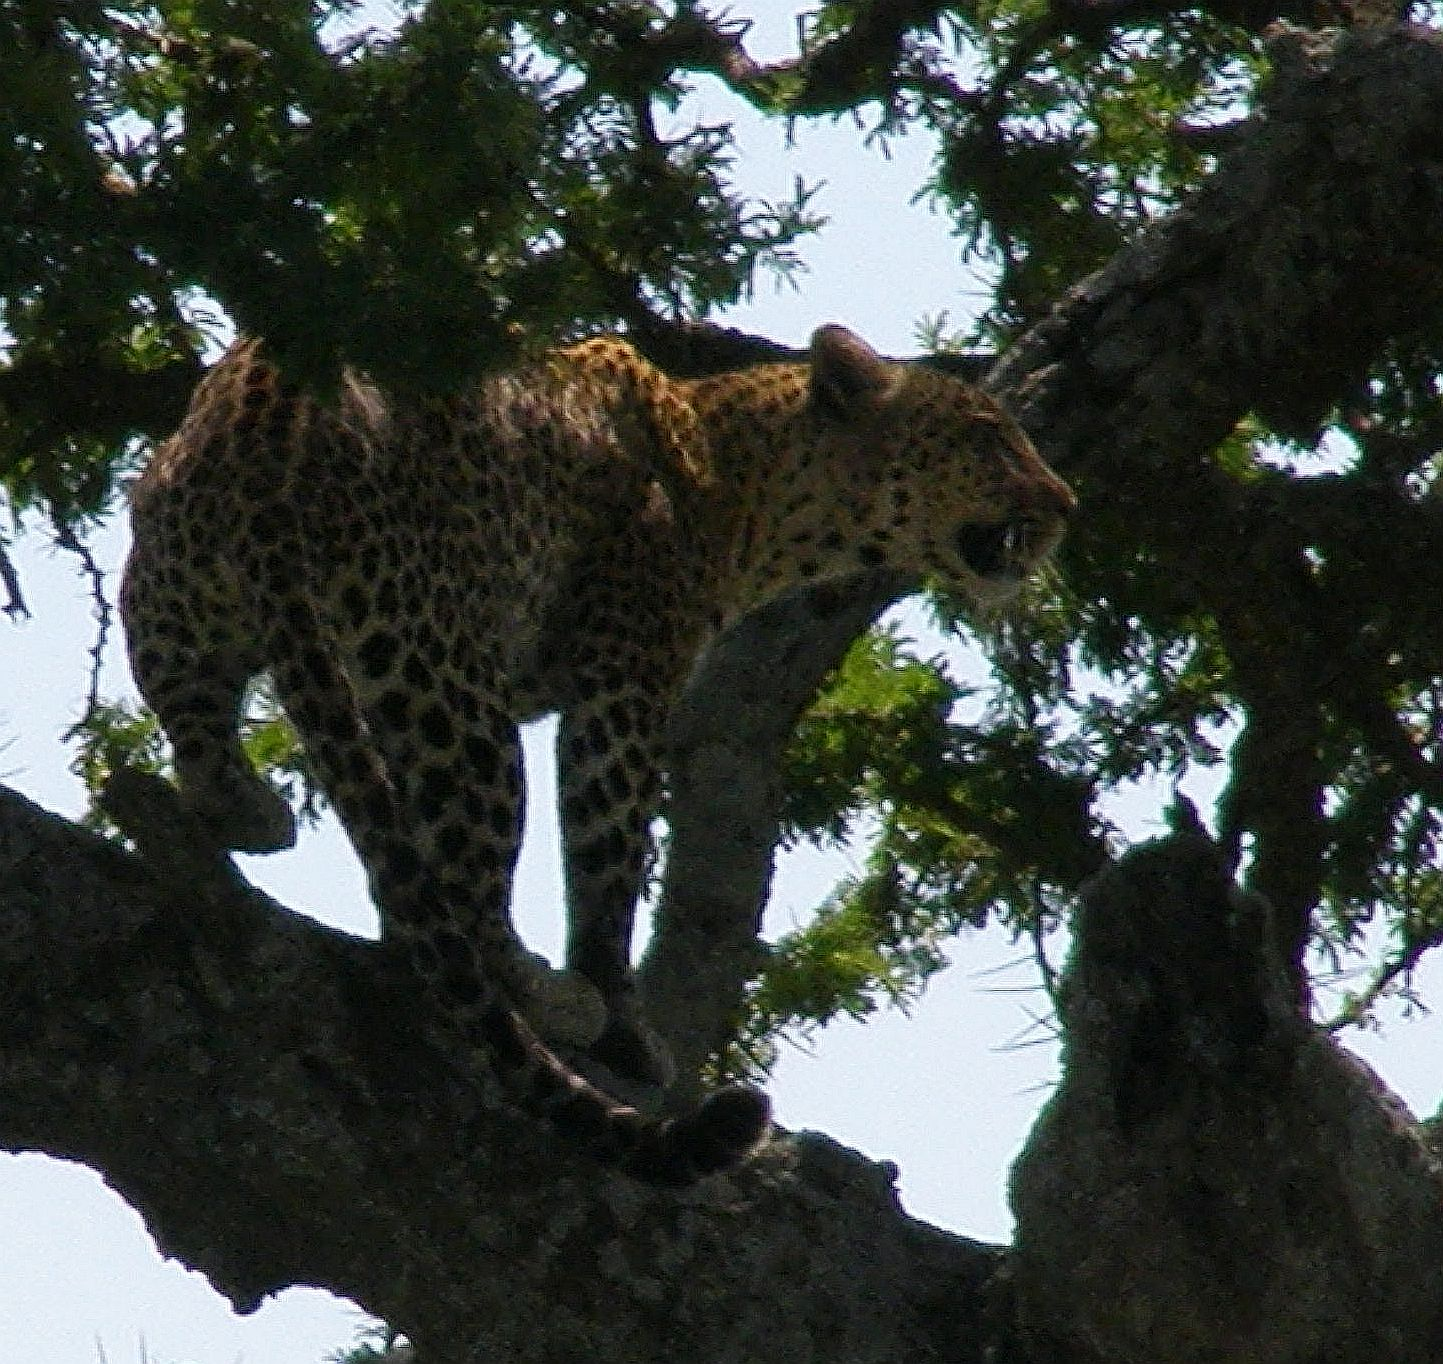 Jaguar Snarl: Beth Camp: On The Road : Leopards And Cheetahs Don't Share